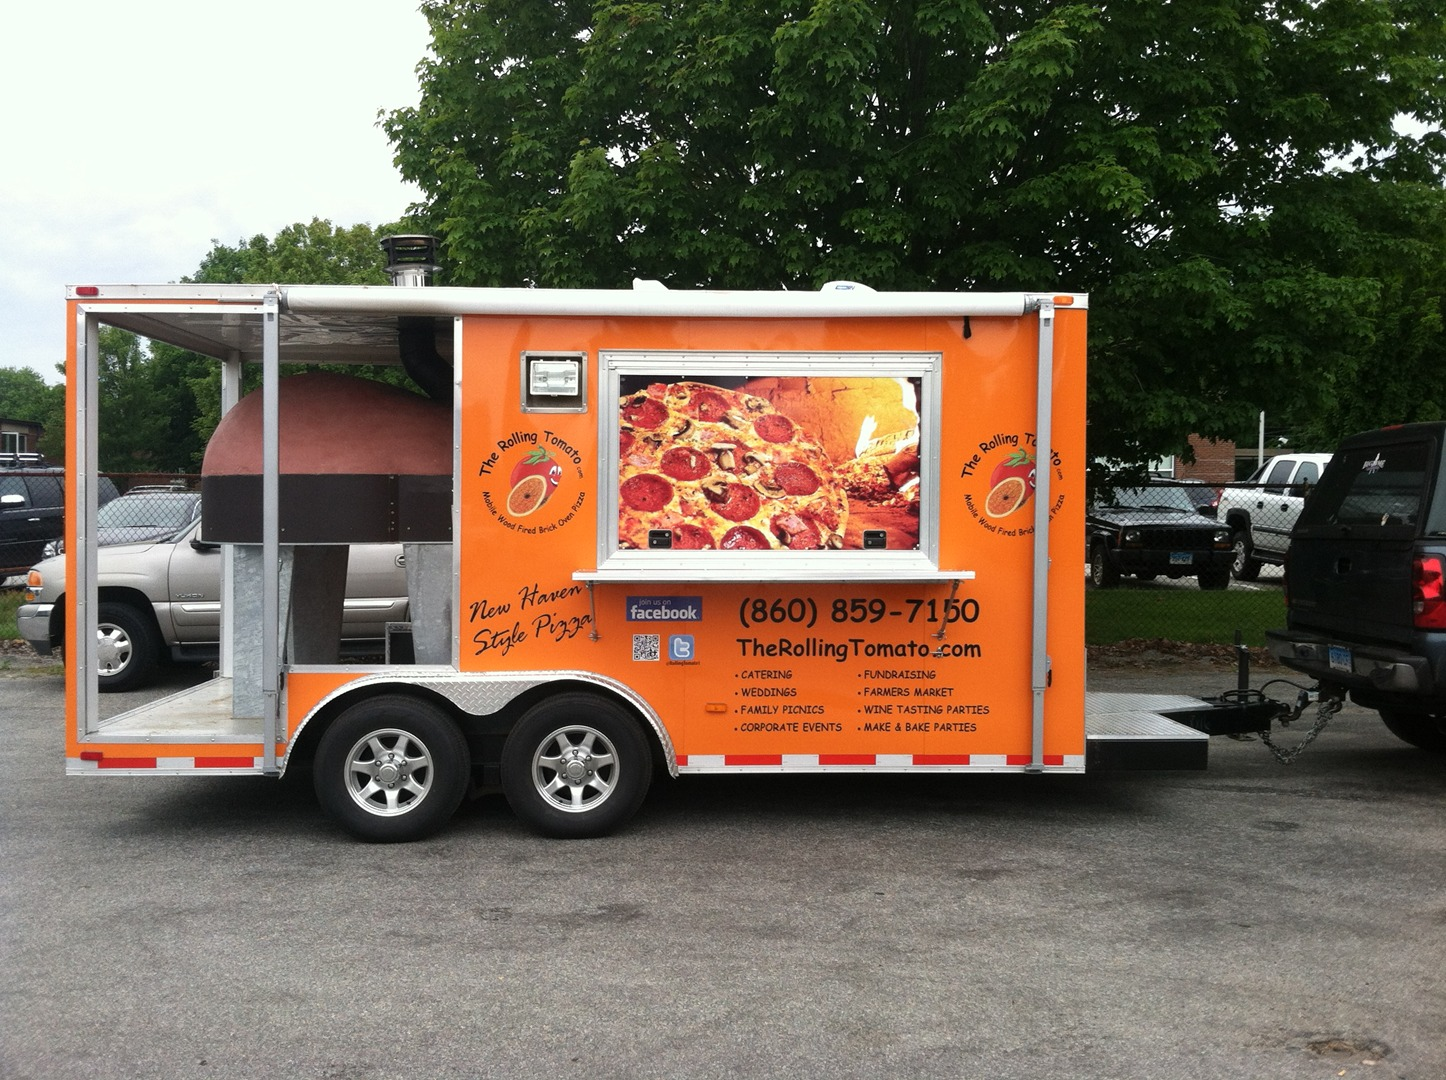 Groton CT The Rolling Tomato Wood Fired Pizza Mobile Catering